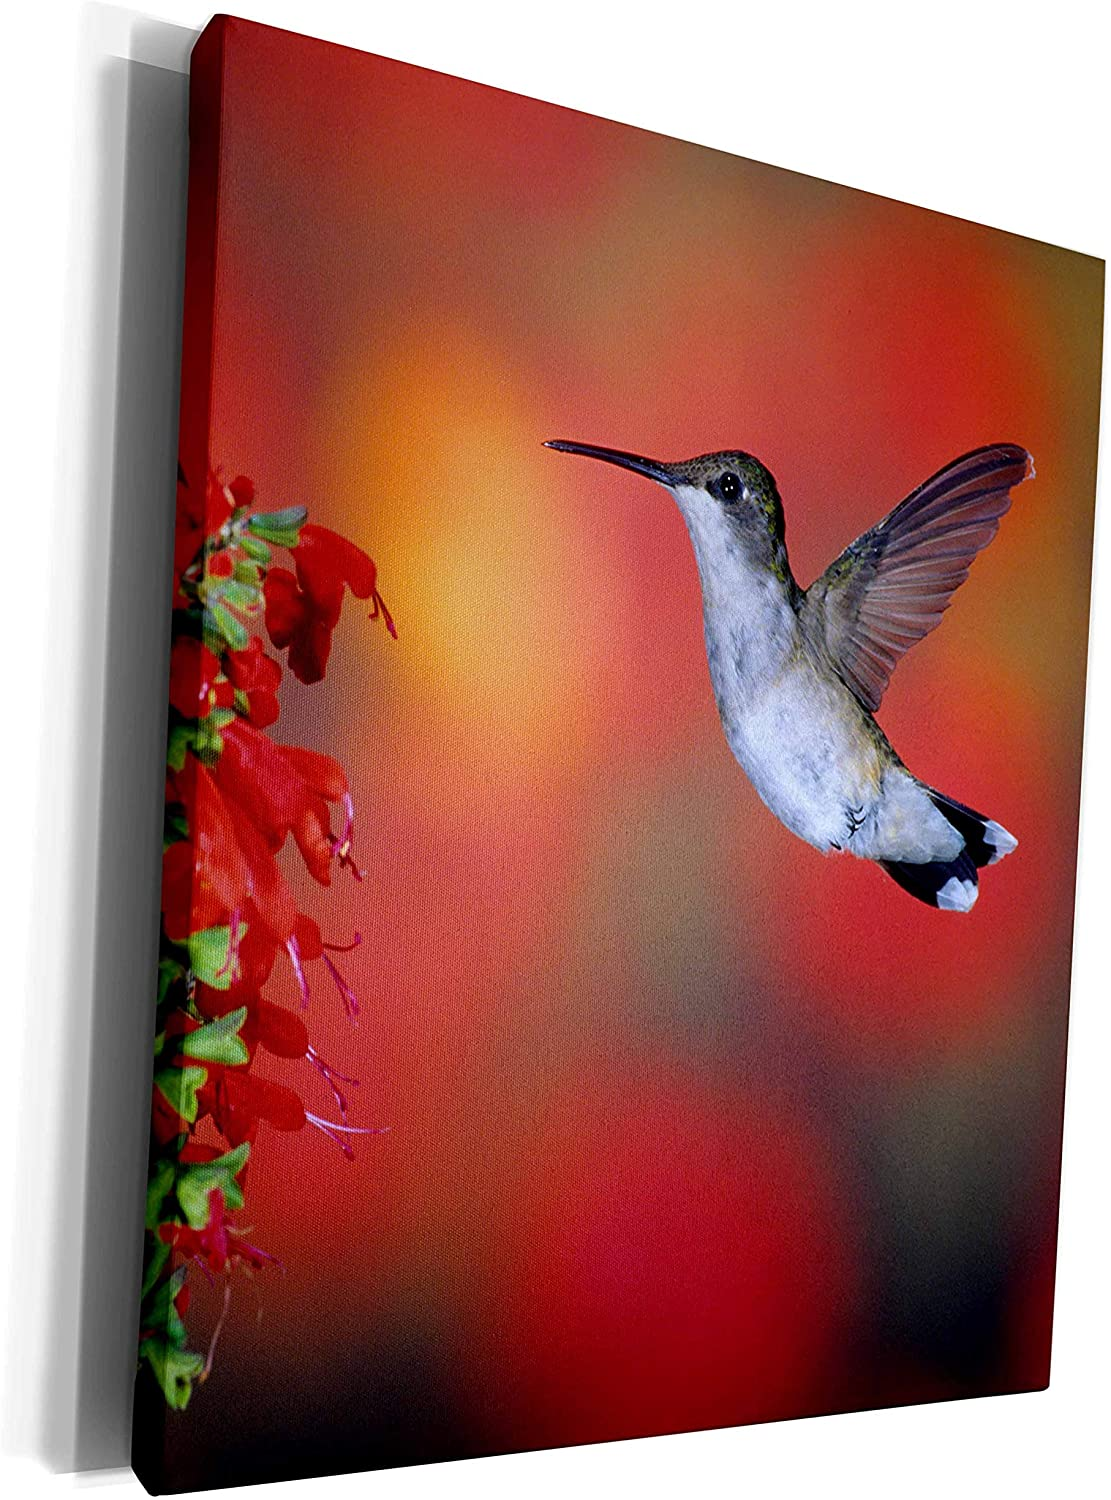 3dRose Danita Delimont - Hummingbird - Ruby-throated Hummingbird on Scarlet Sage, Marion County, Illinois - Museum Grade Canvas Wrap (cw_250985_1)